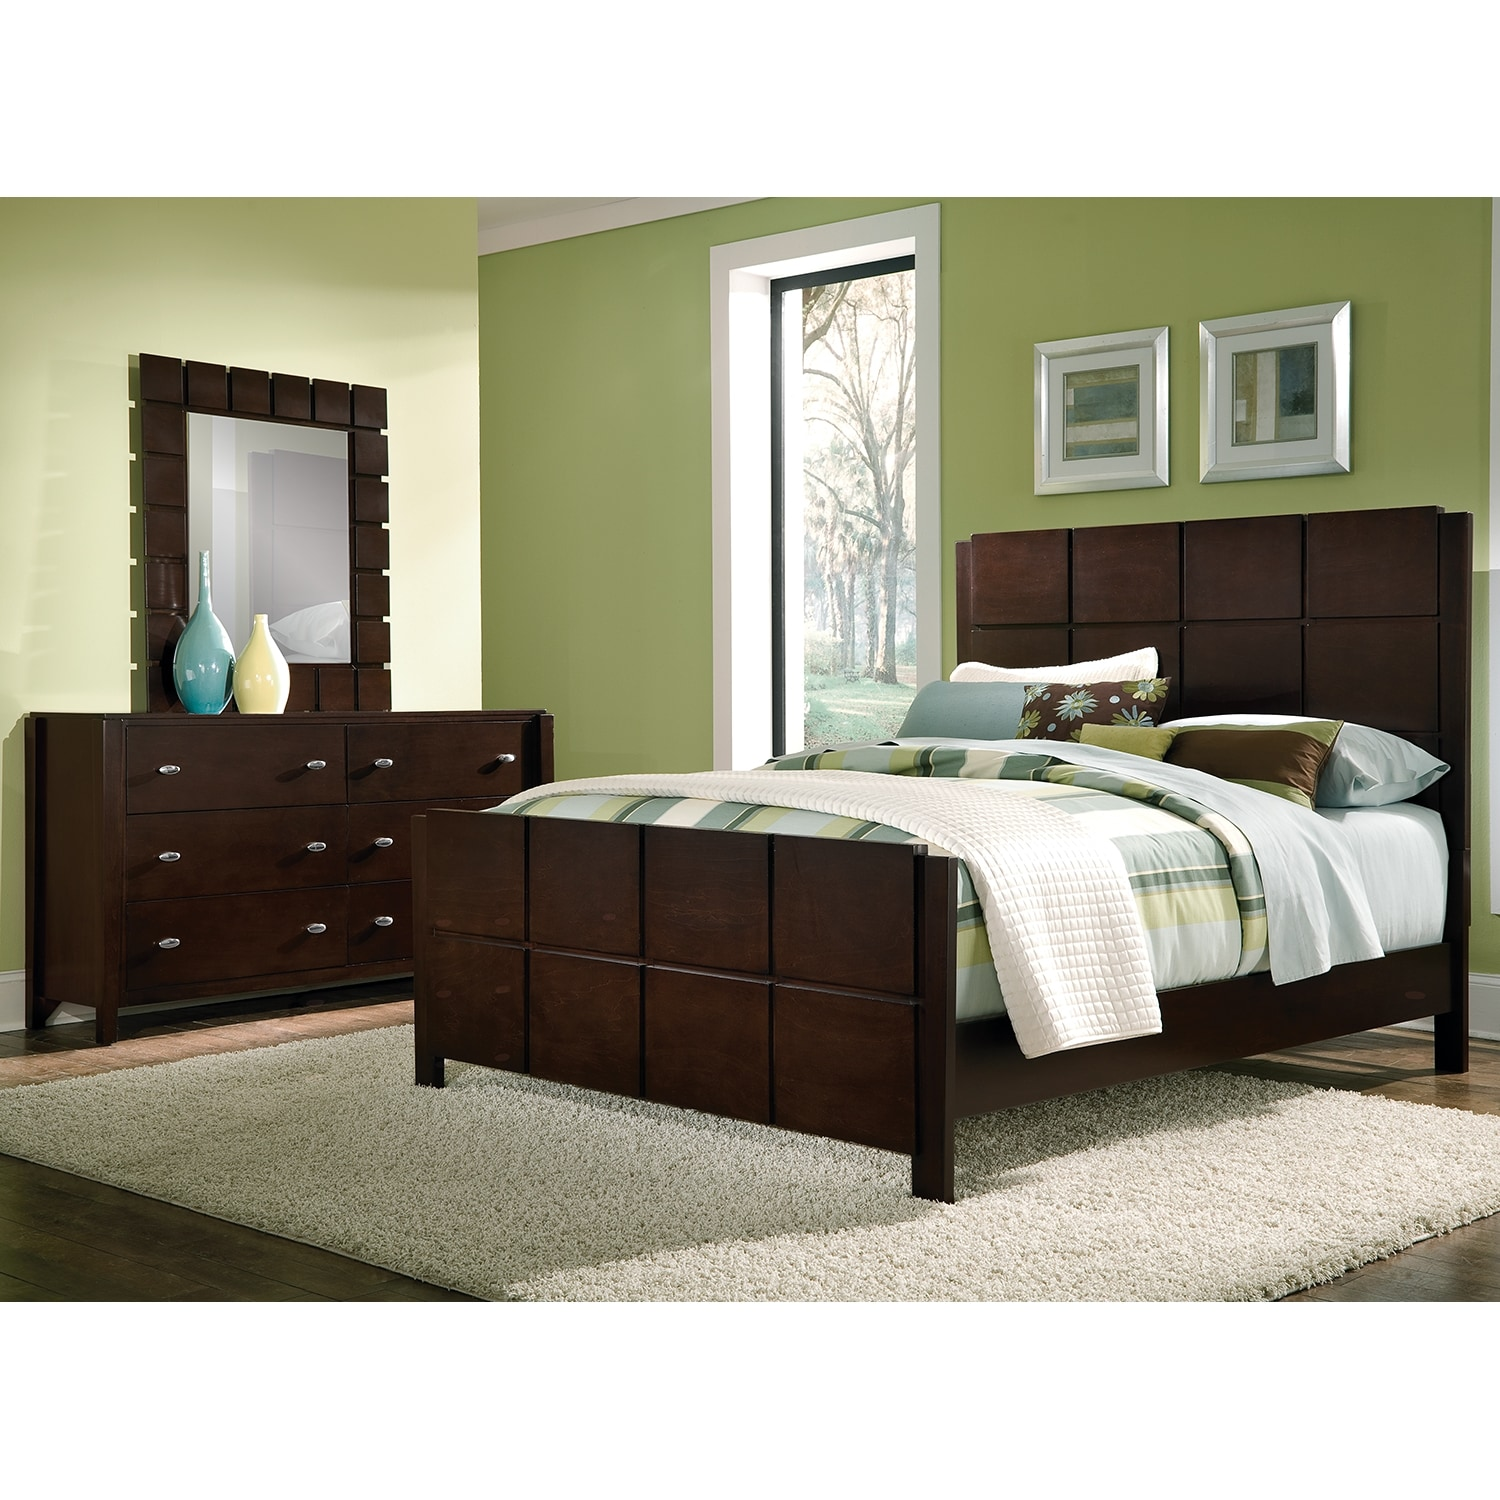 Mosaic 5 pc queen bedroom american signature furniture for Bed and dresser set